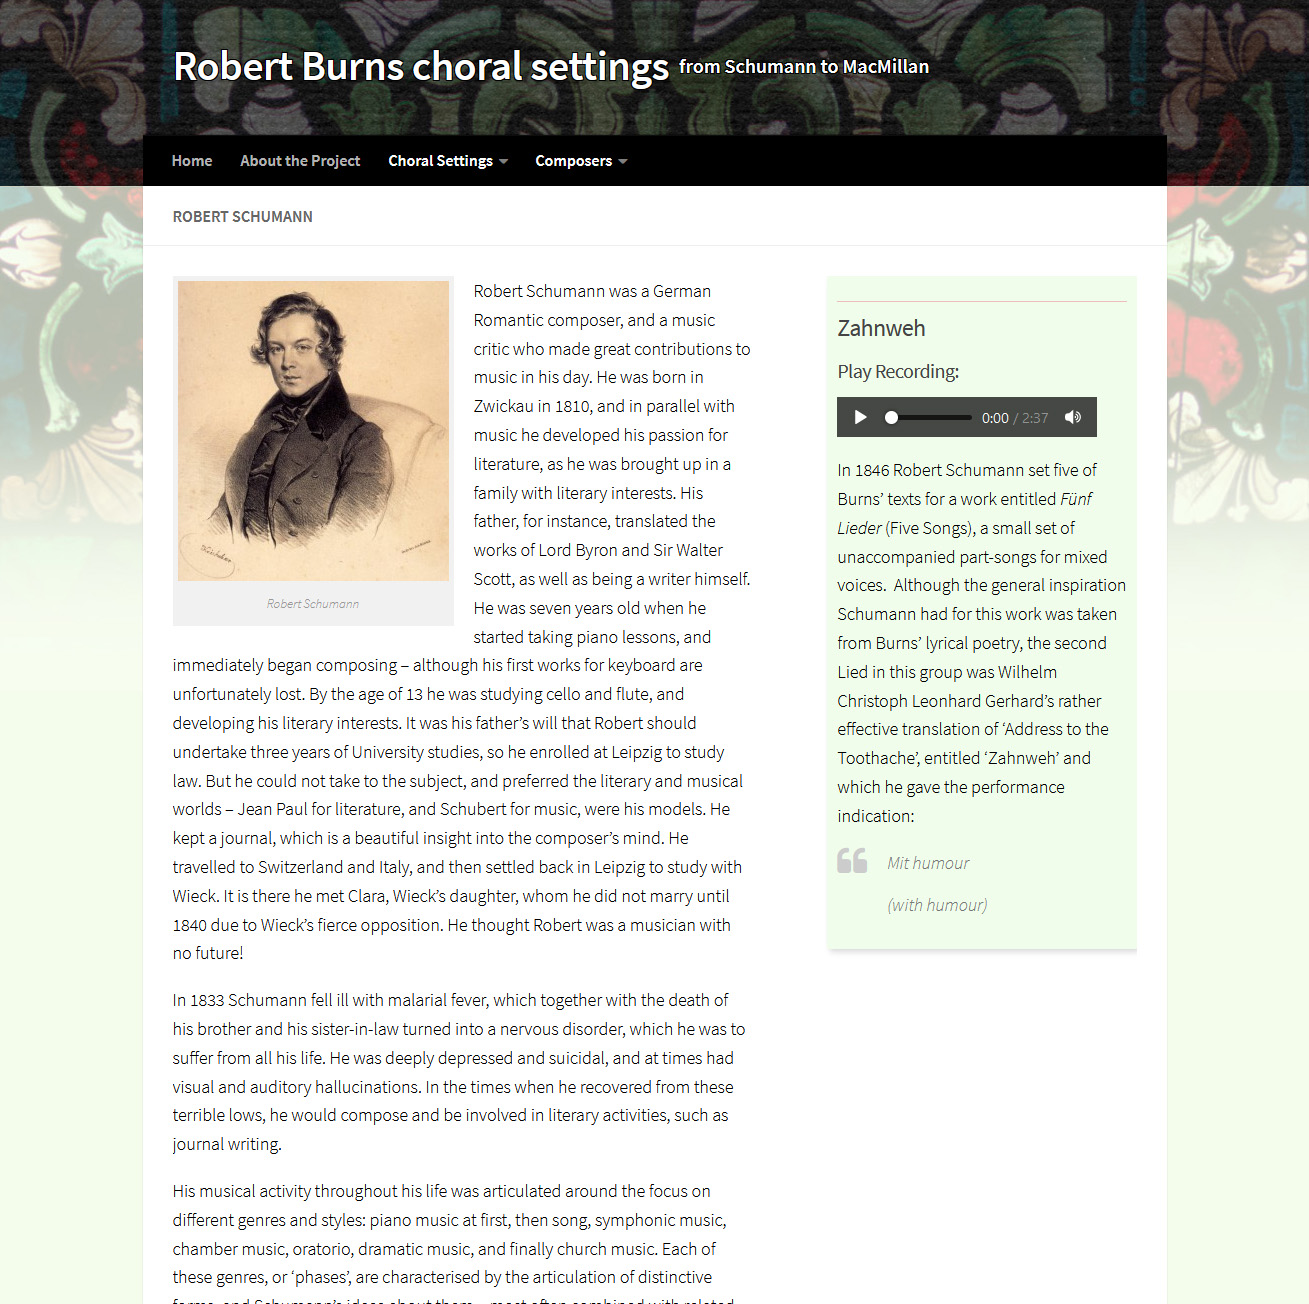 Page about the choral setting by Robert Schumann